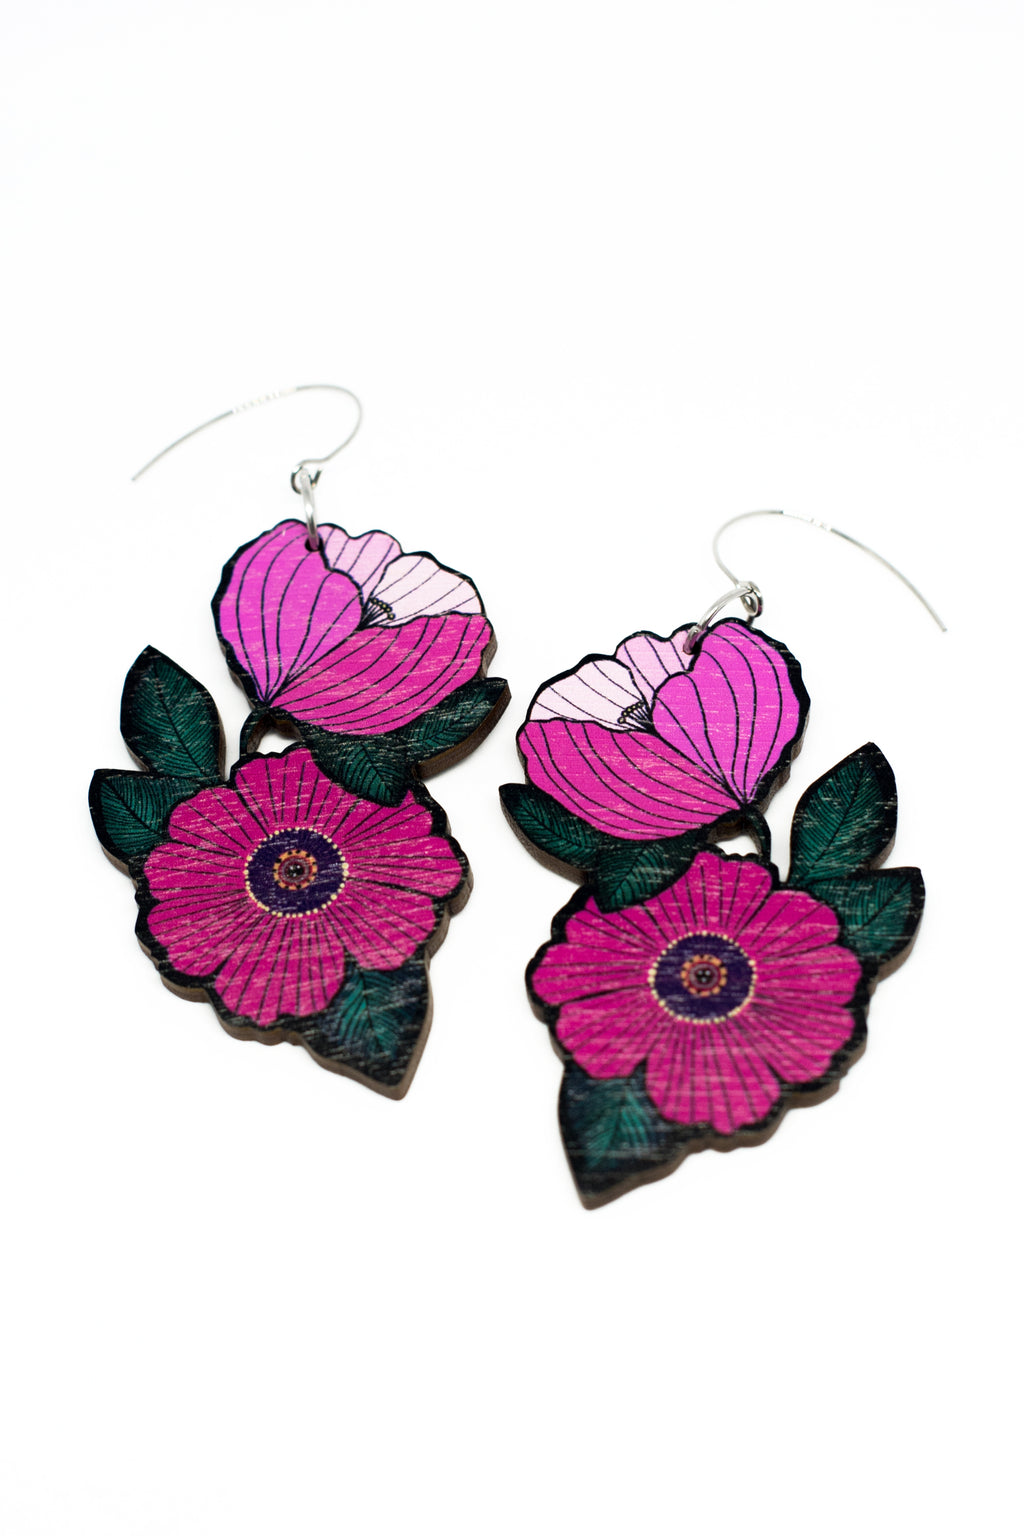 Forget Me Not Earrings, Pink/Teal, Wood